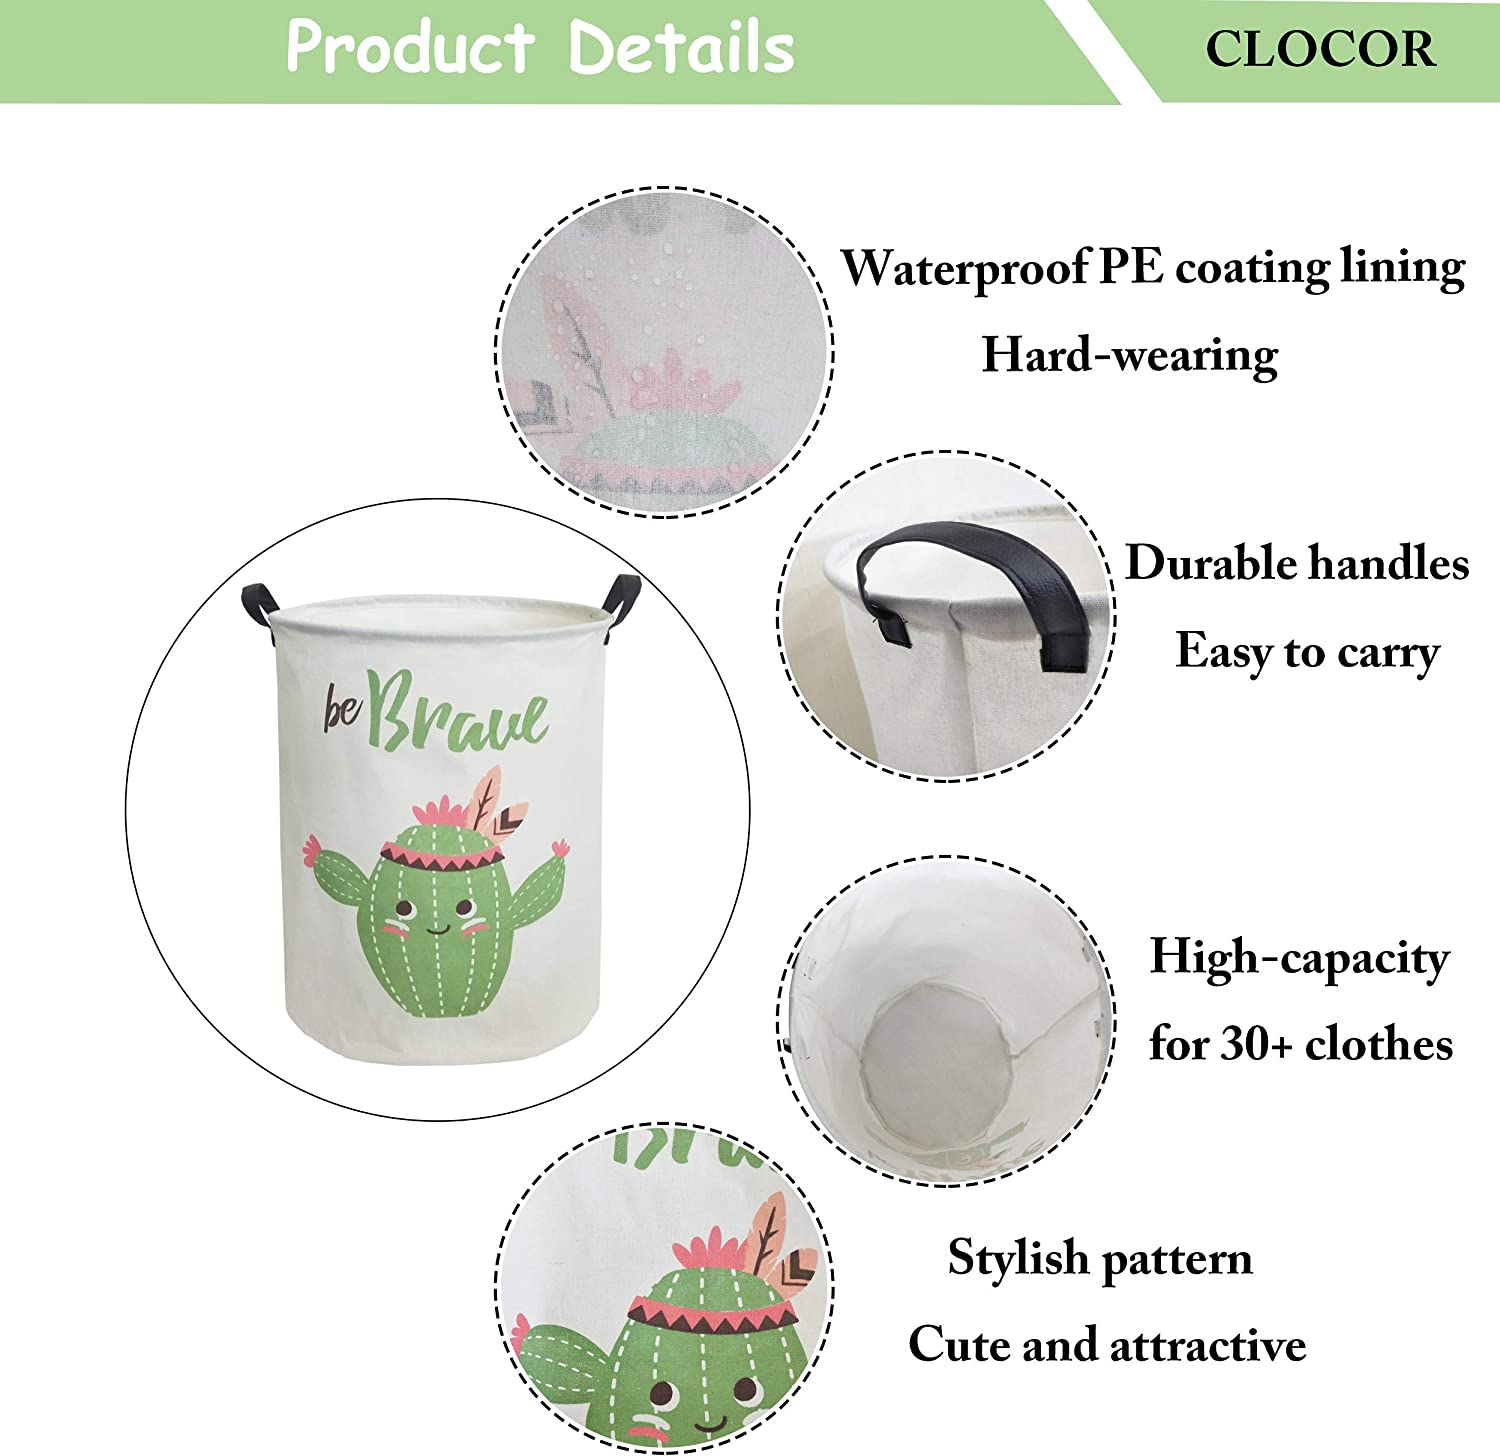 CLOCOR Large Storage Basket,Canvas Fabric Waterproof Storage Bin Collapsible Laundry Hamper for Home,Kids,Toy Organizer Bear